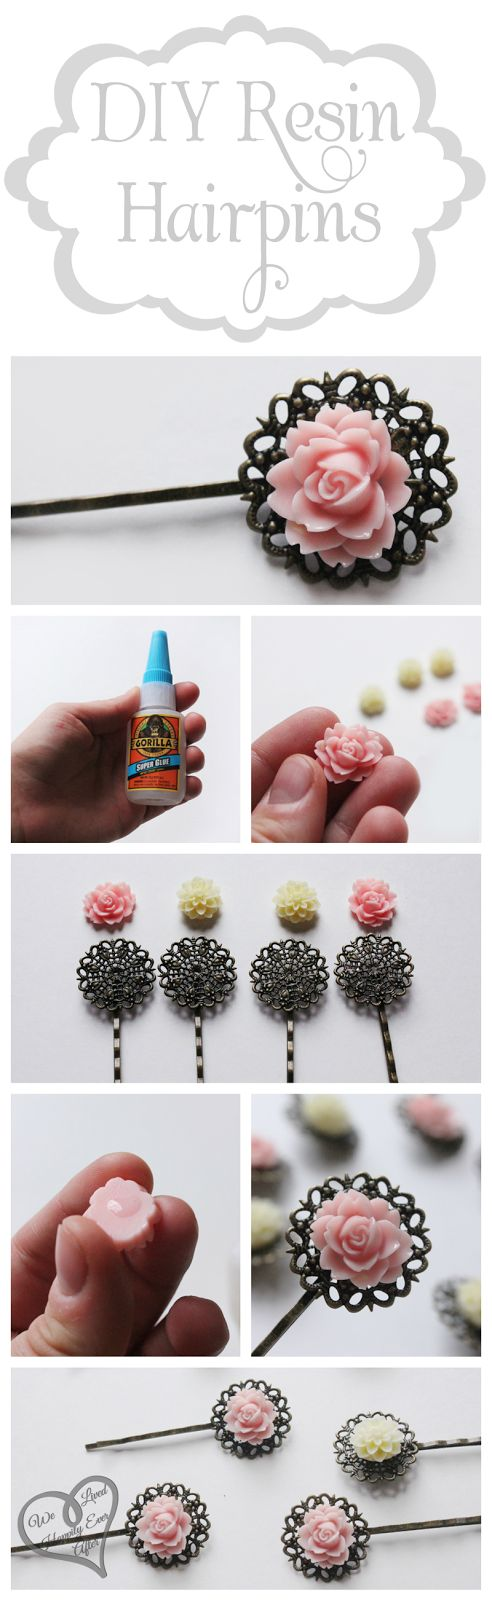 We Lived Happily Ever After: DIY Resin Hairpieces.  Maybe make the bobby pins with jewelry findings.